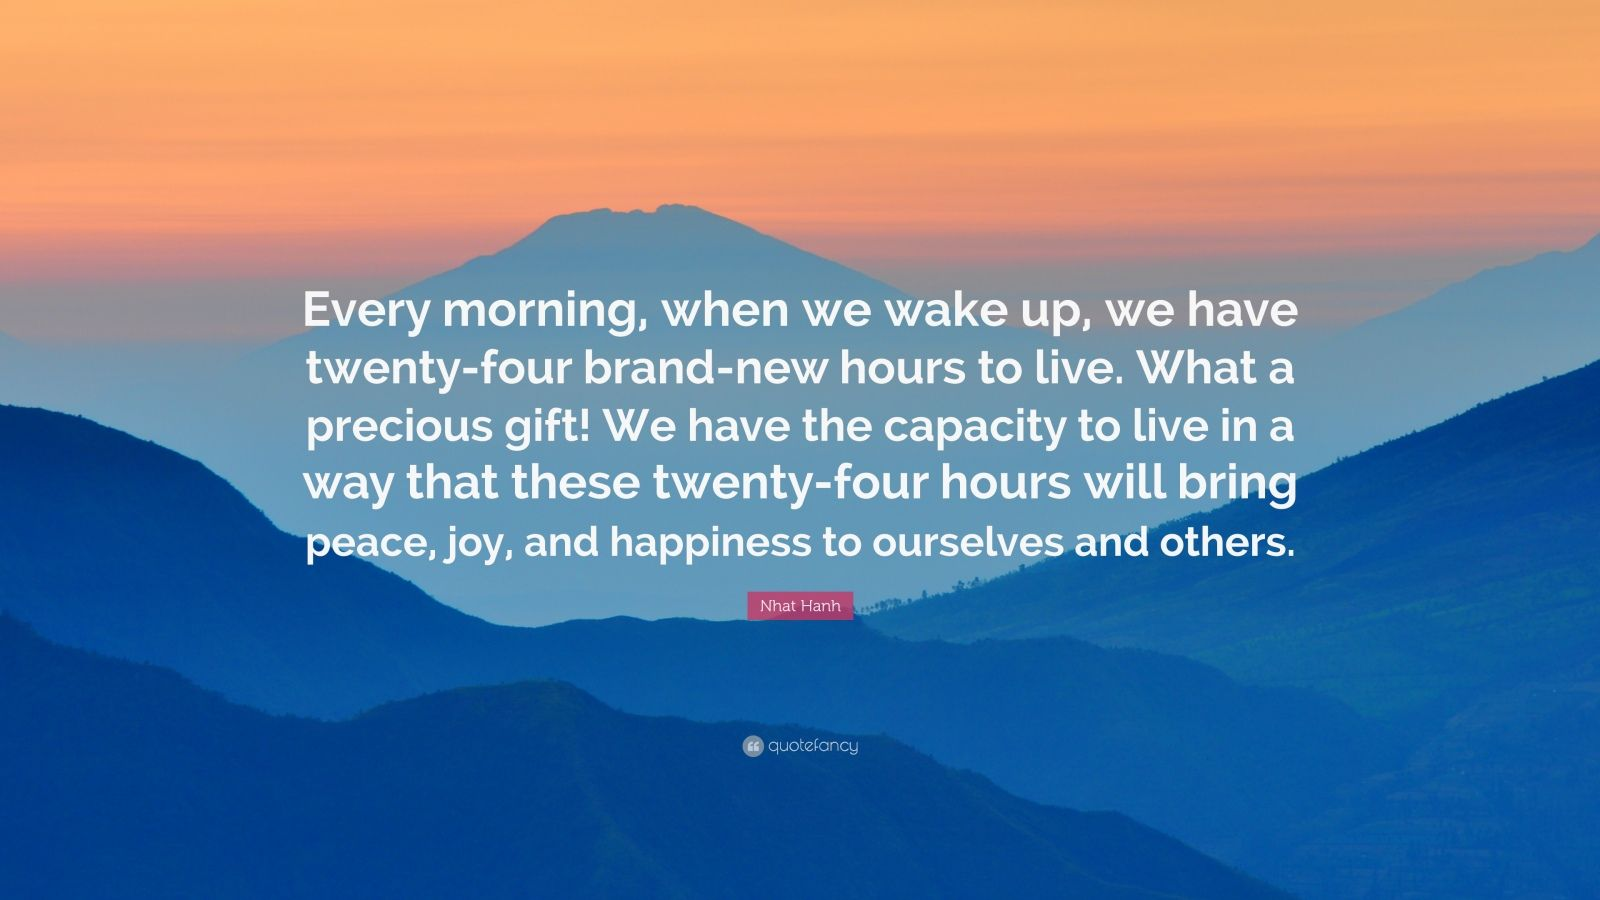 "Nhat Hanh Quote: ""Every morning, when we wake up, we have twenty-four brand-new hours to live. What a precious gift! We have the capacity to live in a way that these twenty-four hours will bring peace, joy, and happiness to ourselves and others."""